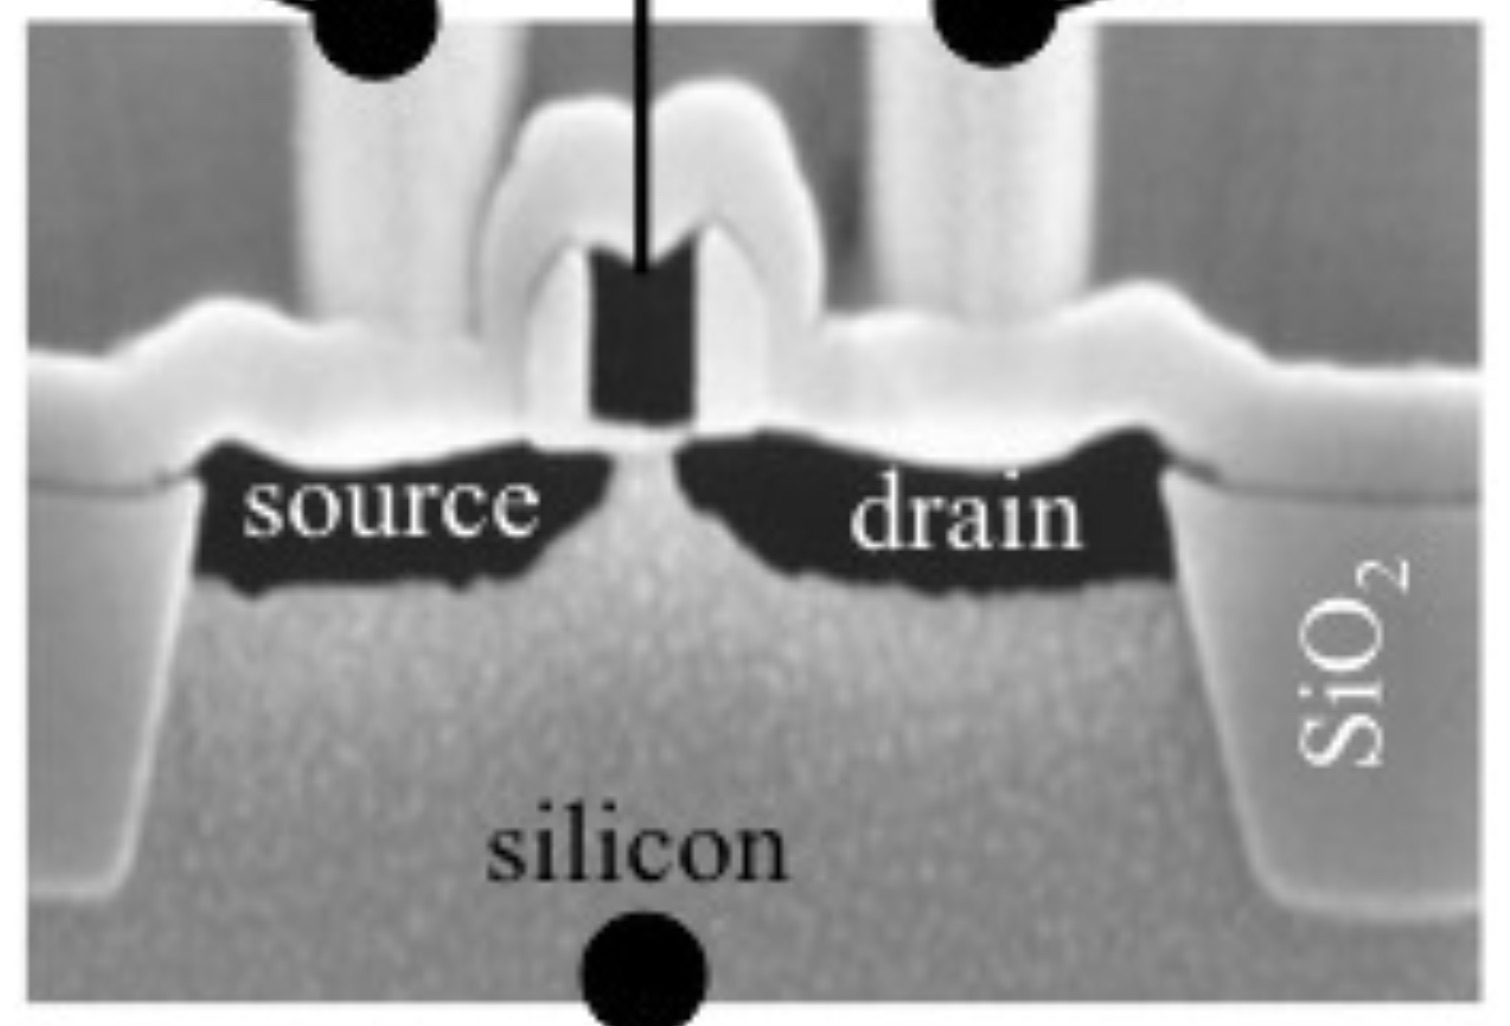 components_mosfet-micrograph.jpg